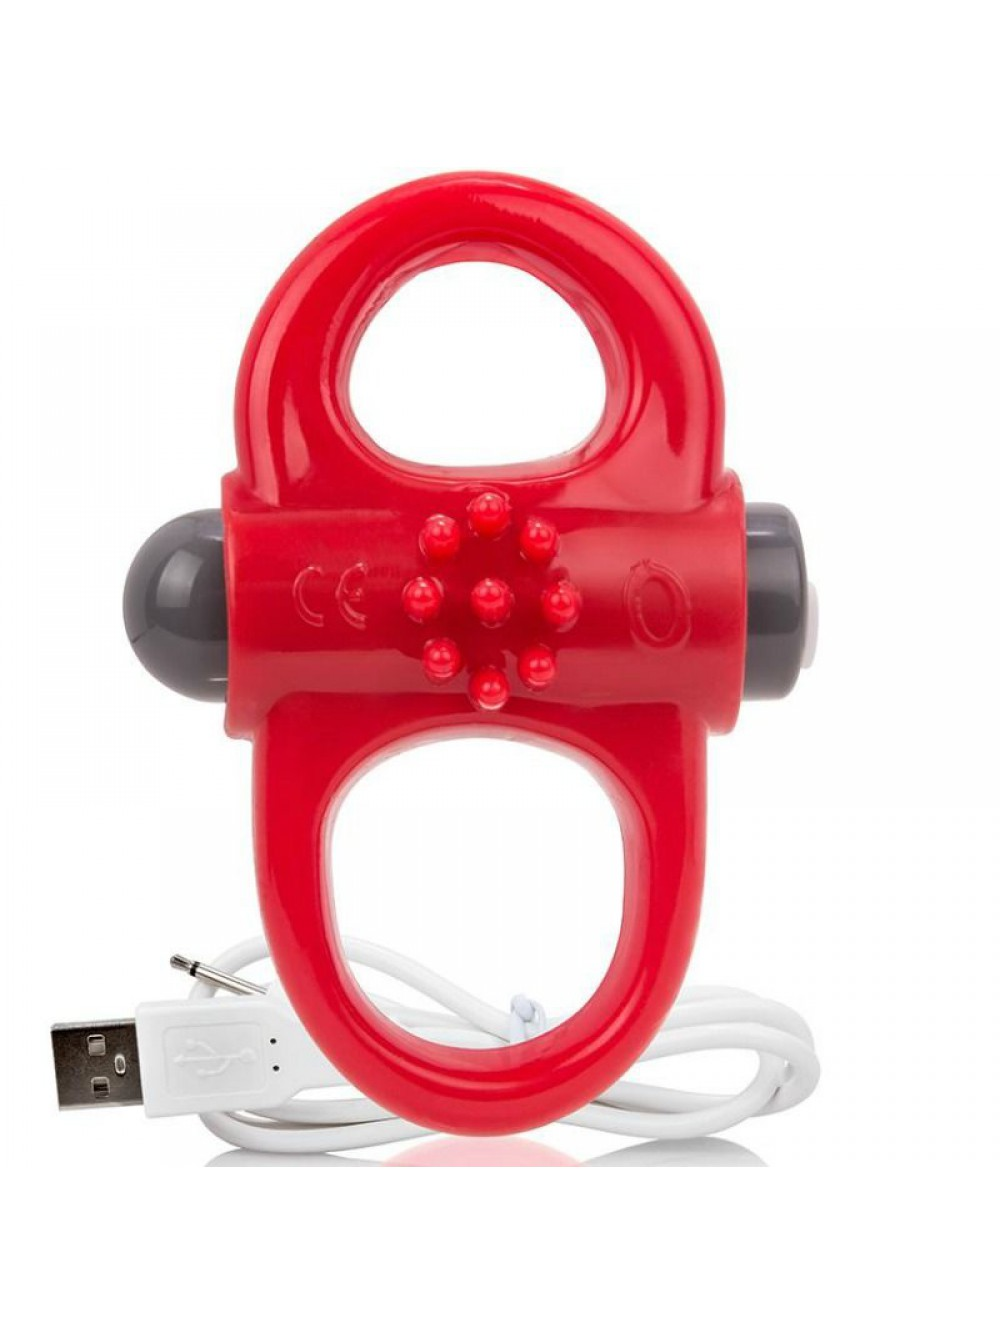 SCREAMING O RECHARGEABLE AND VIBRATING RING YOGA RED